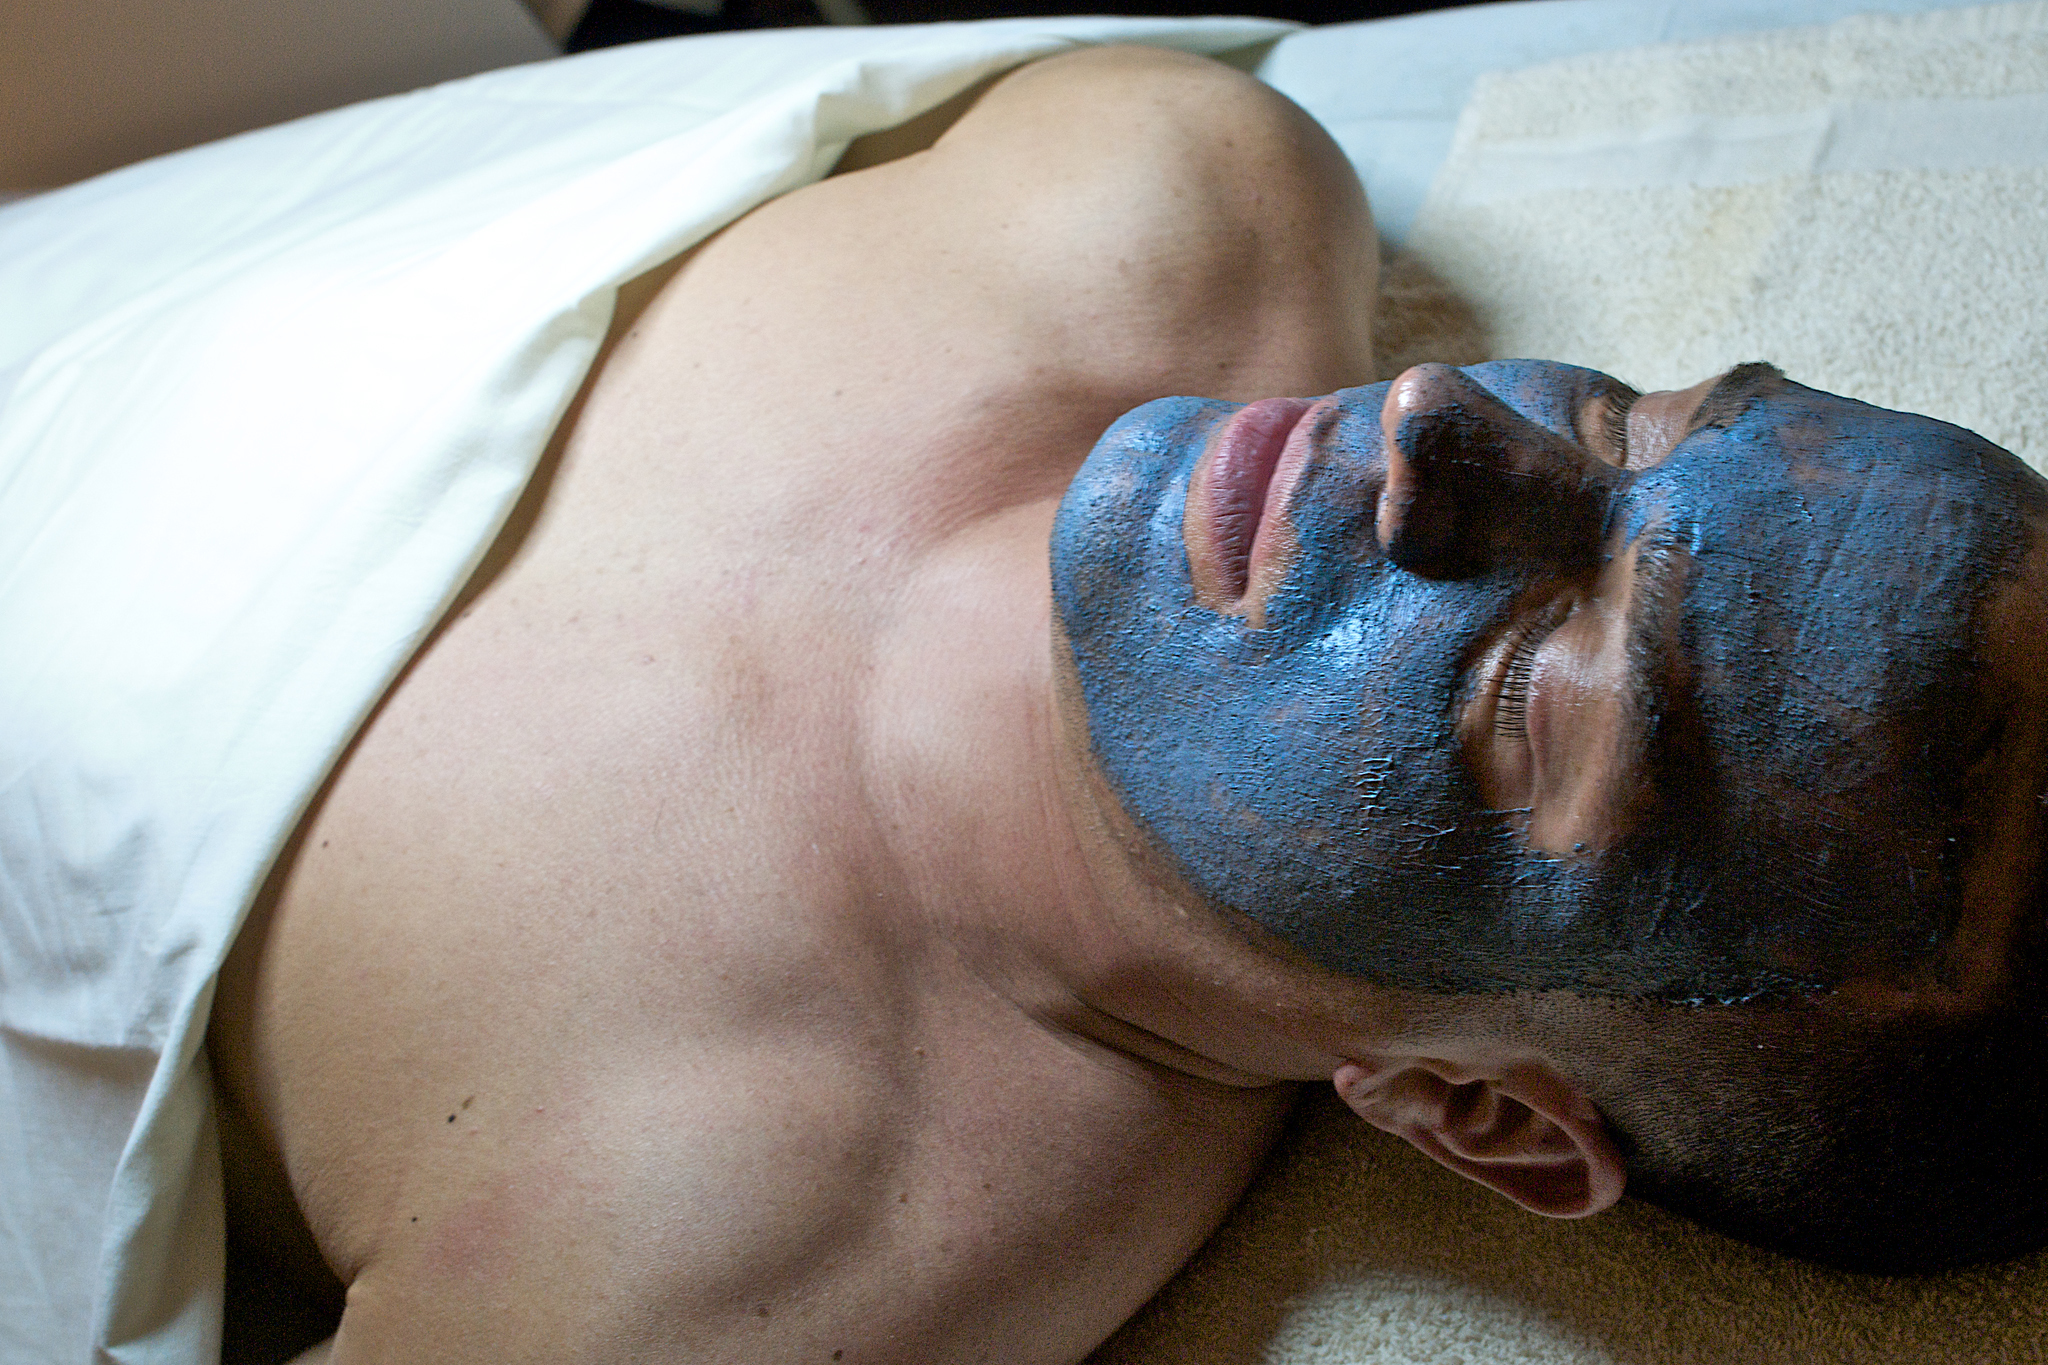 New York spas for men: four spots that focus on guys